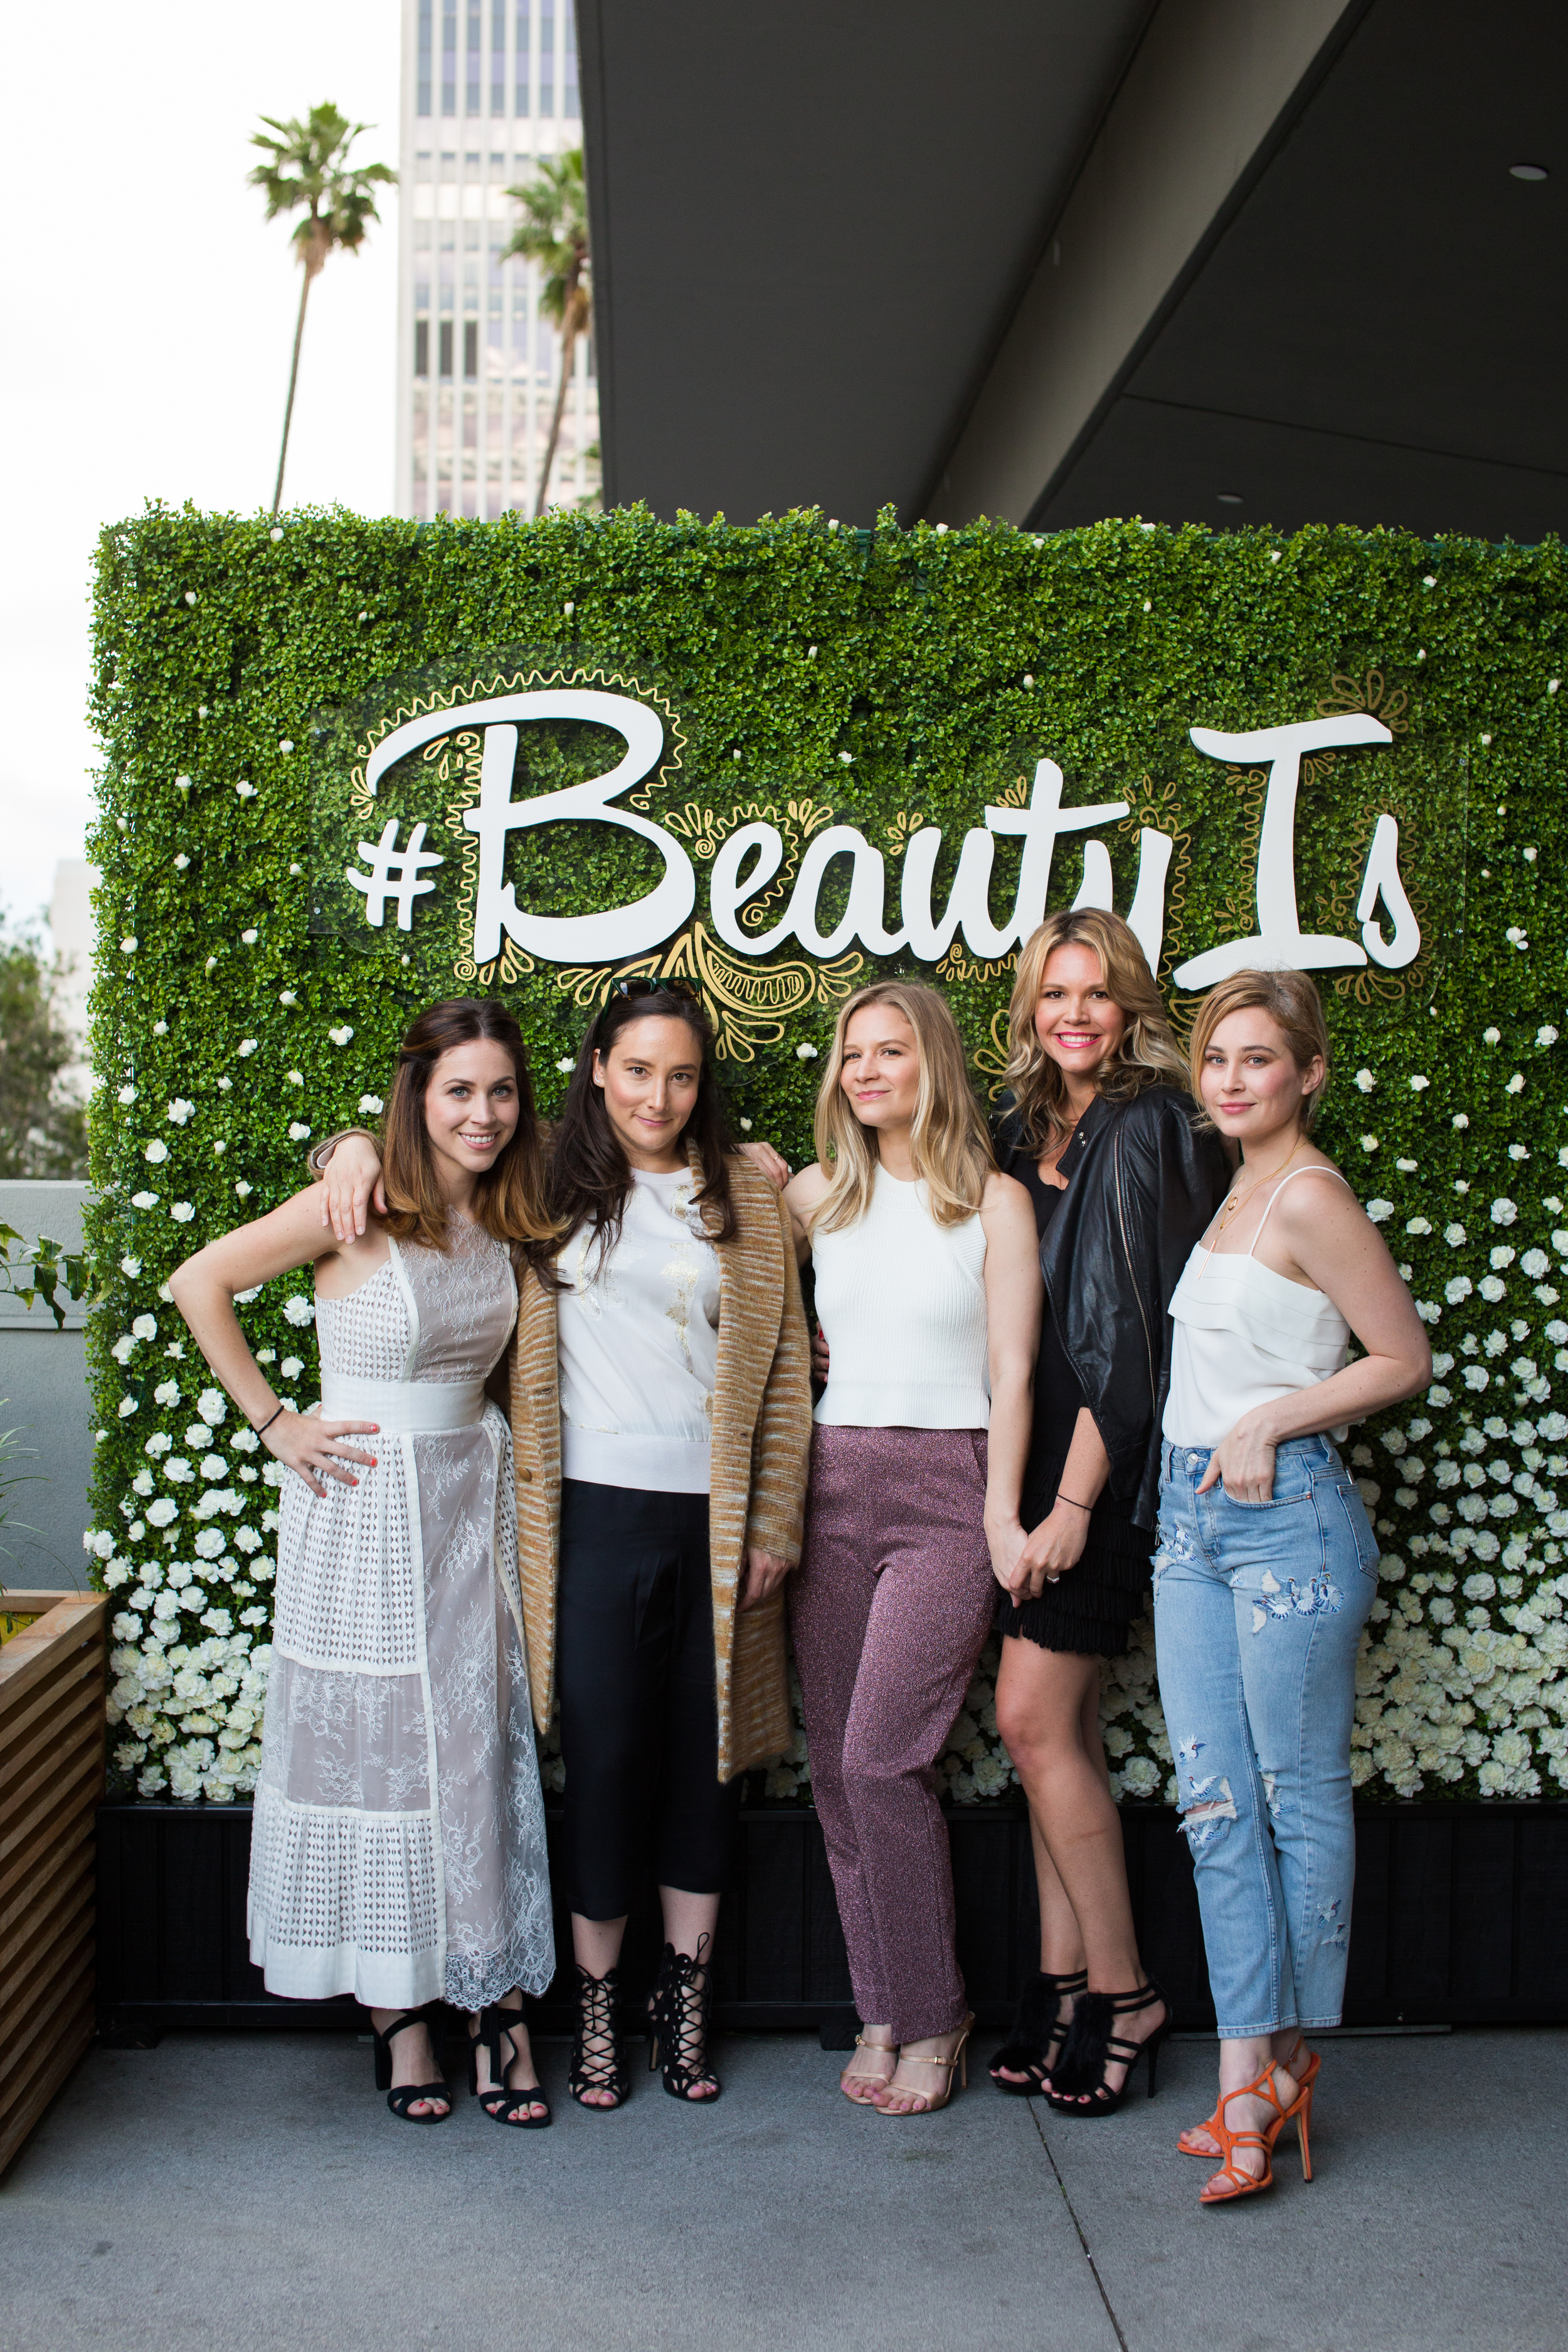 DBA and Create & Cultivate Team celebrate #BeautyIs with Dove.